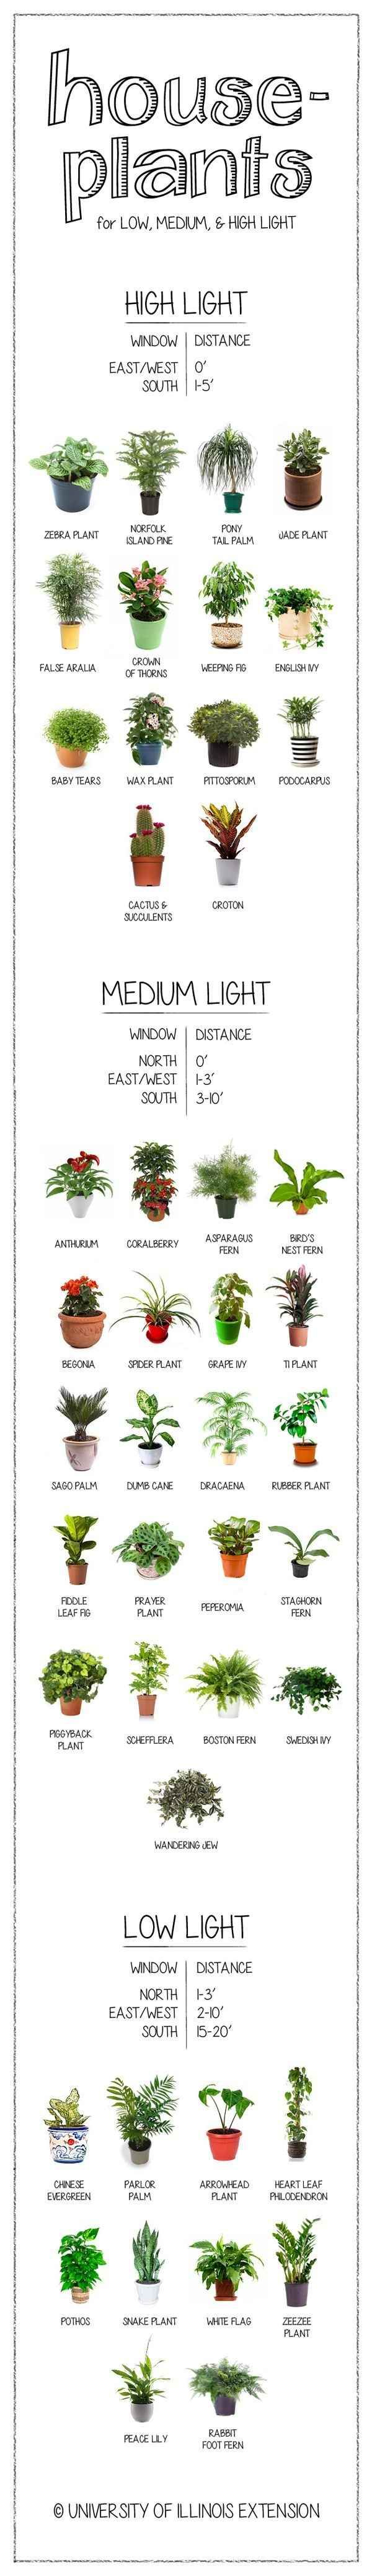 How much light does your houseplant need? Find out on this handy chart.